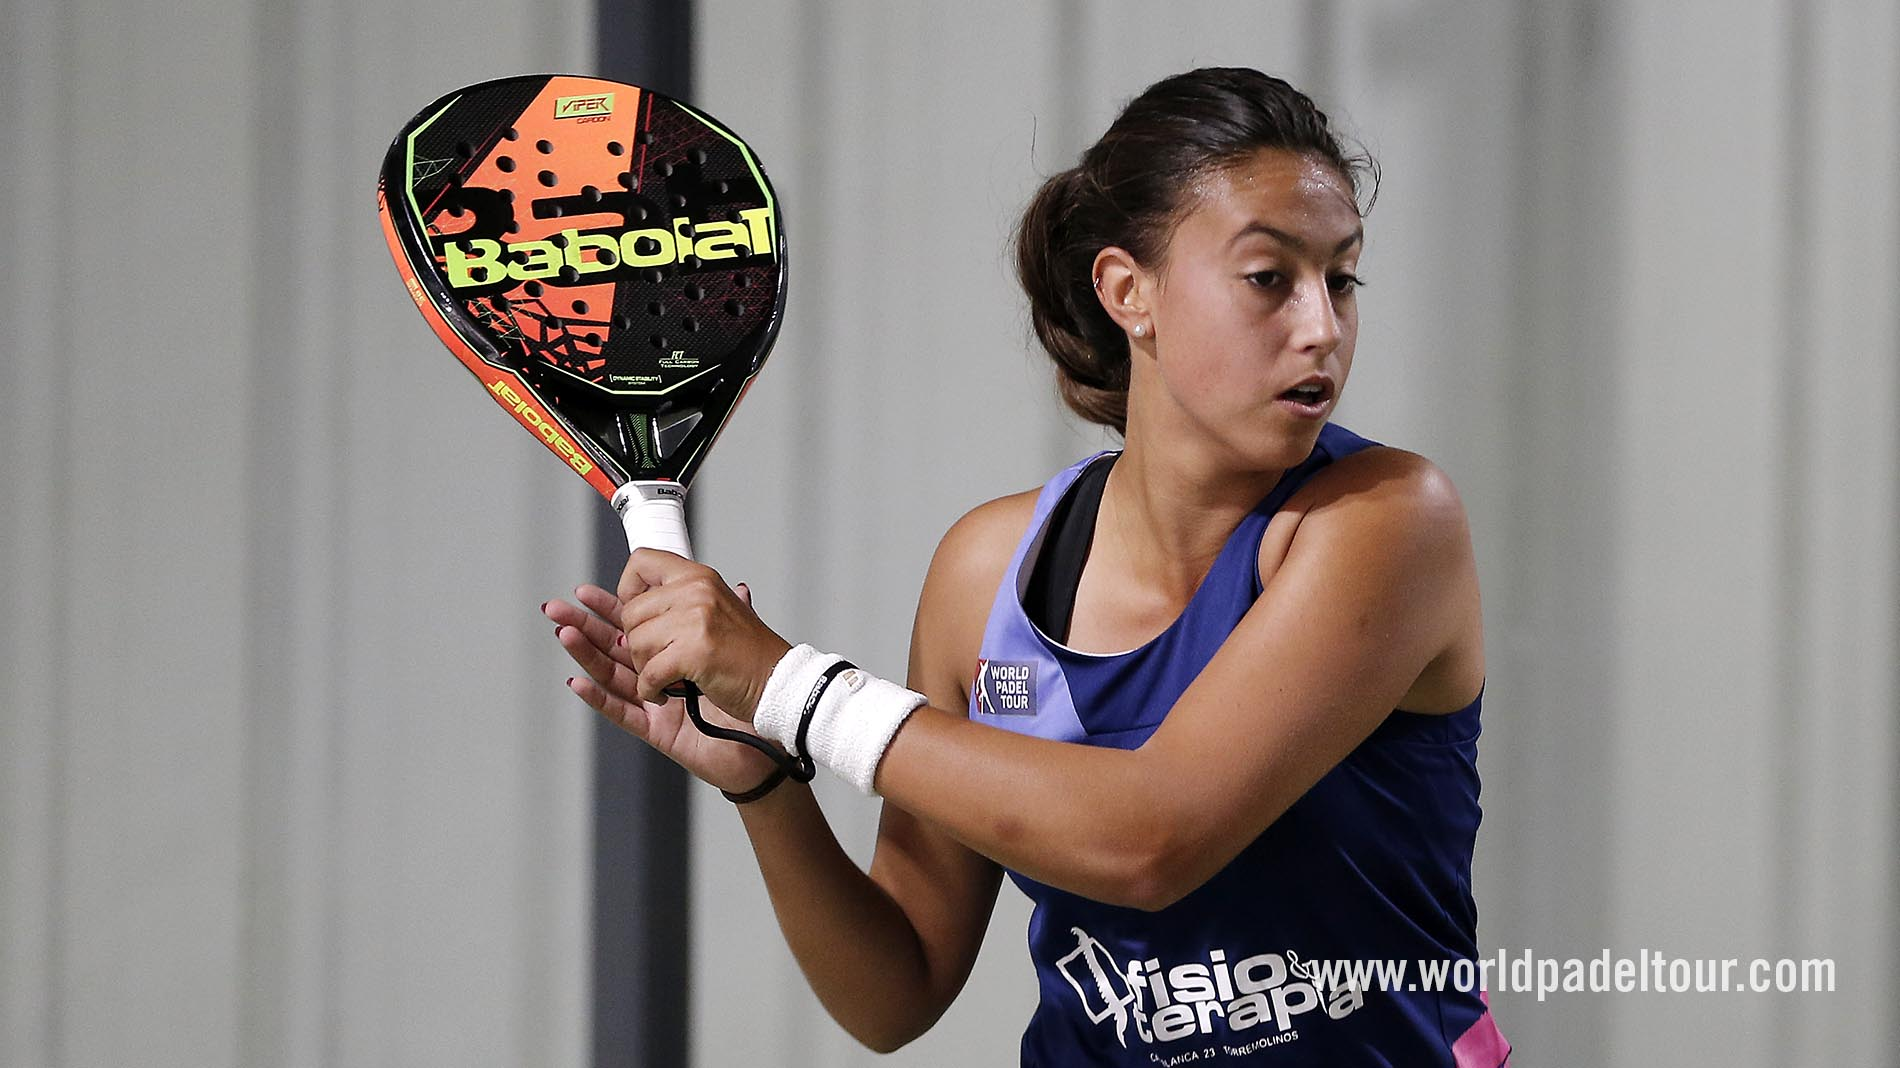 Raquel Segura - Previa Lugo Open 2018 - World Padel Tour